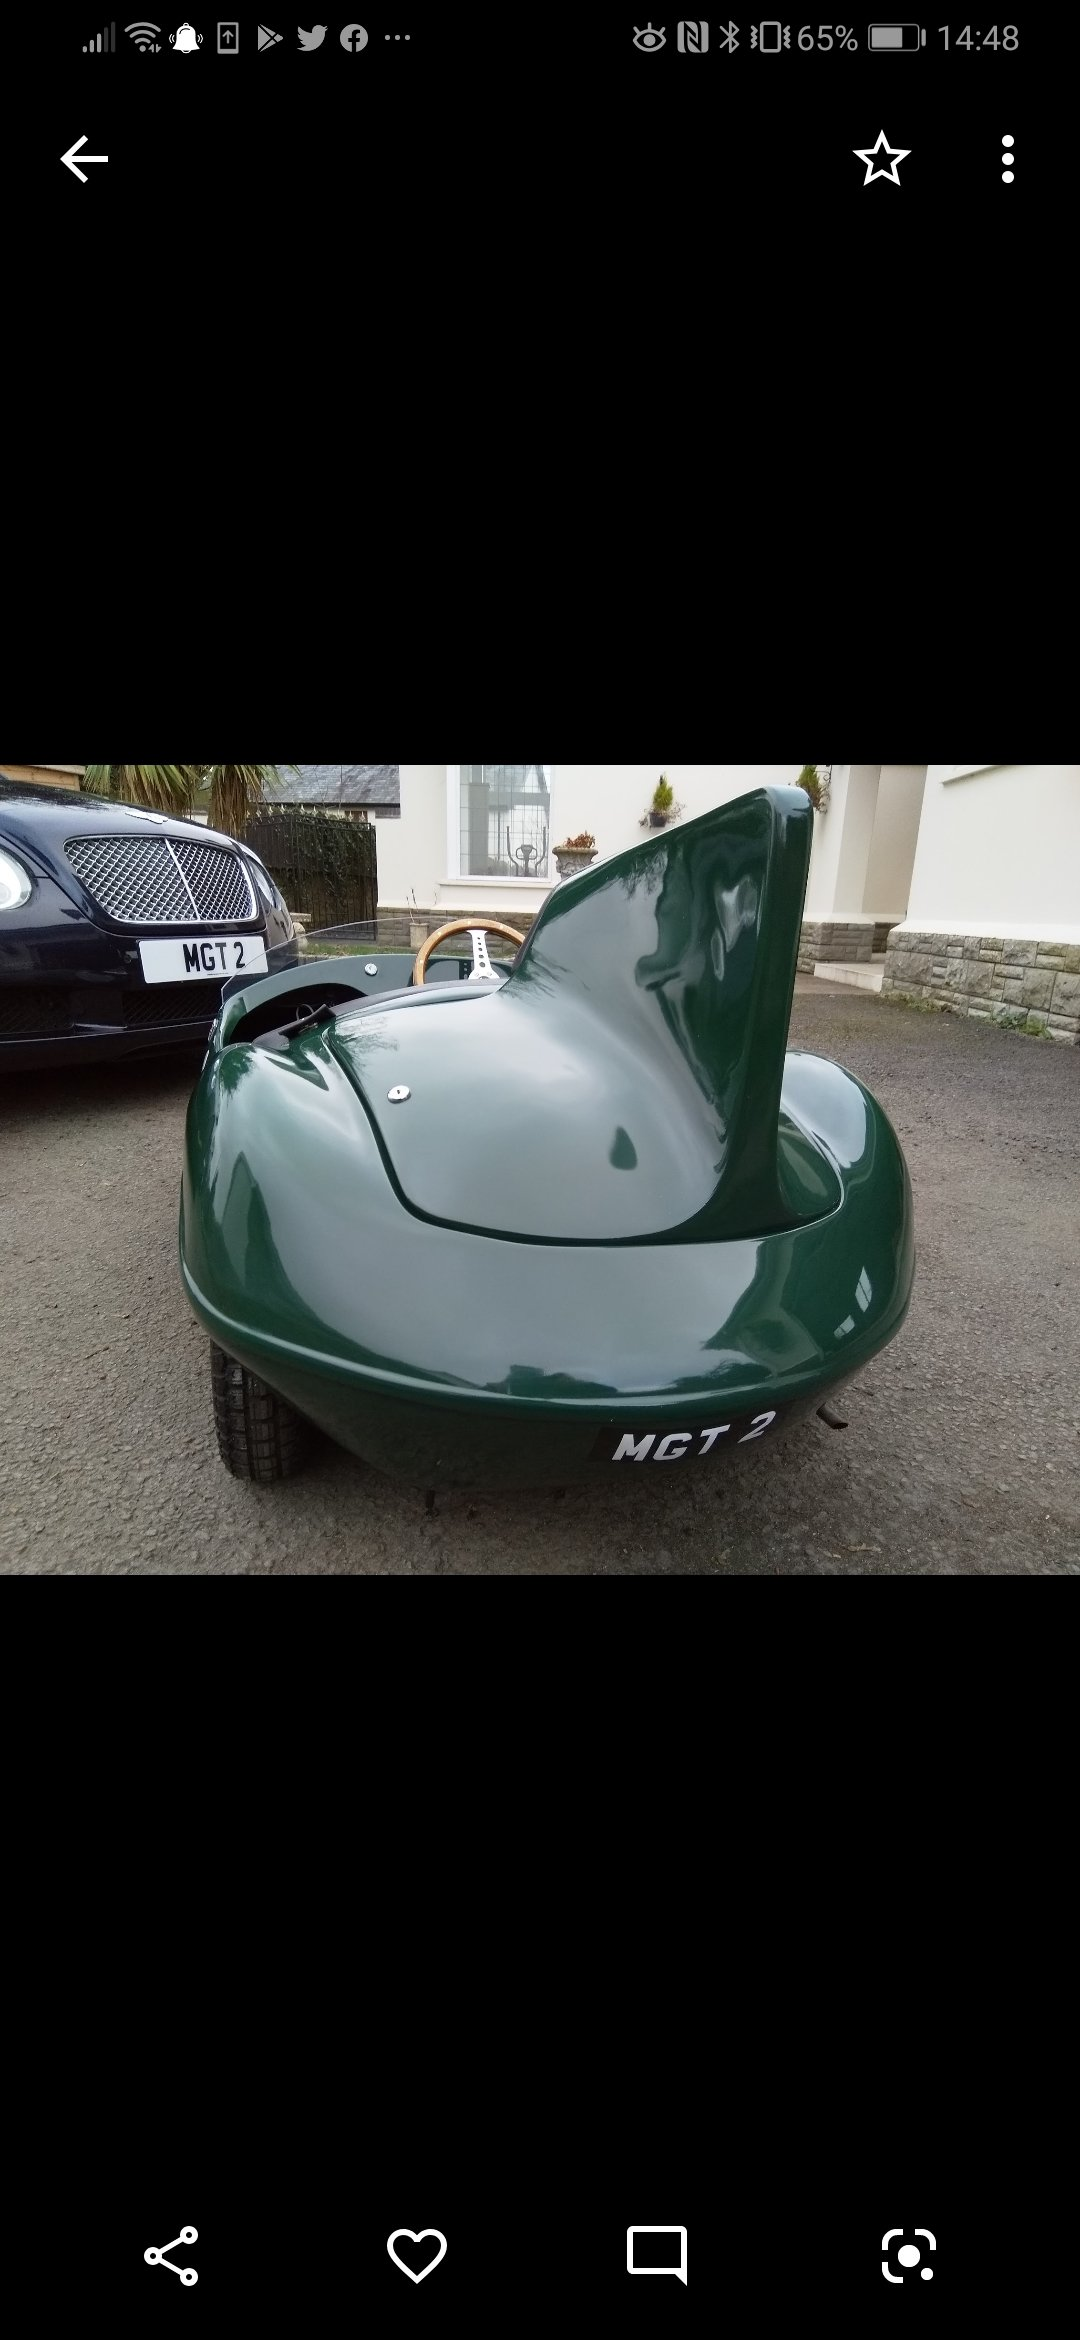 Jaguar D Type toy car - Perfect Christmas gift! For Sale (picture 3 of 6)